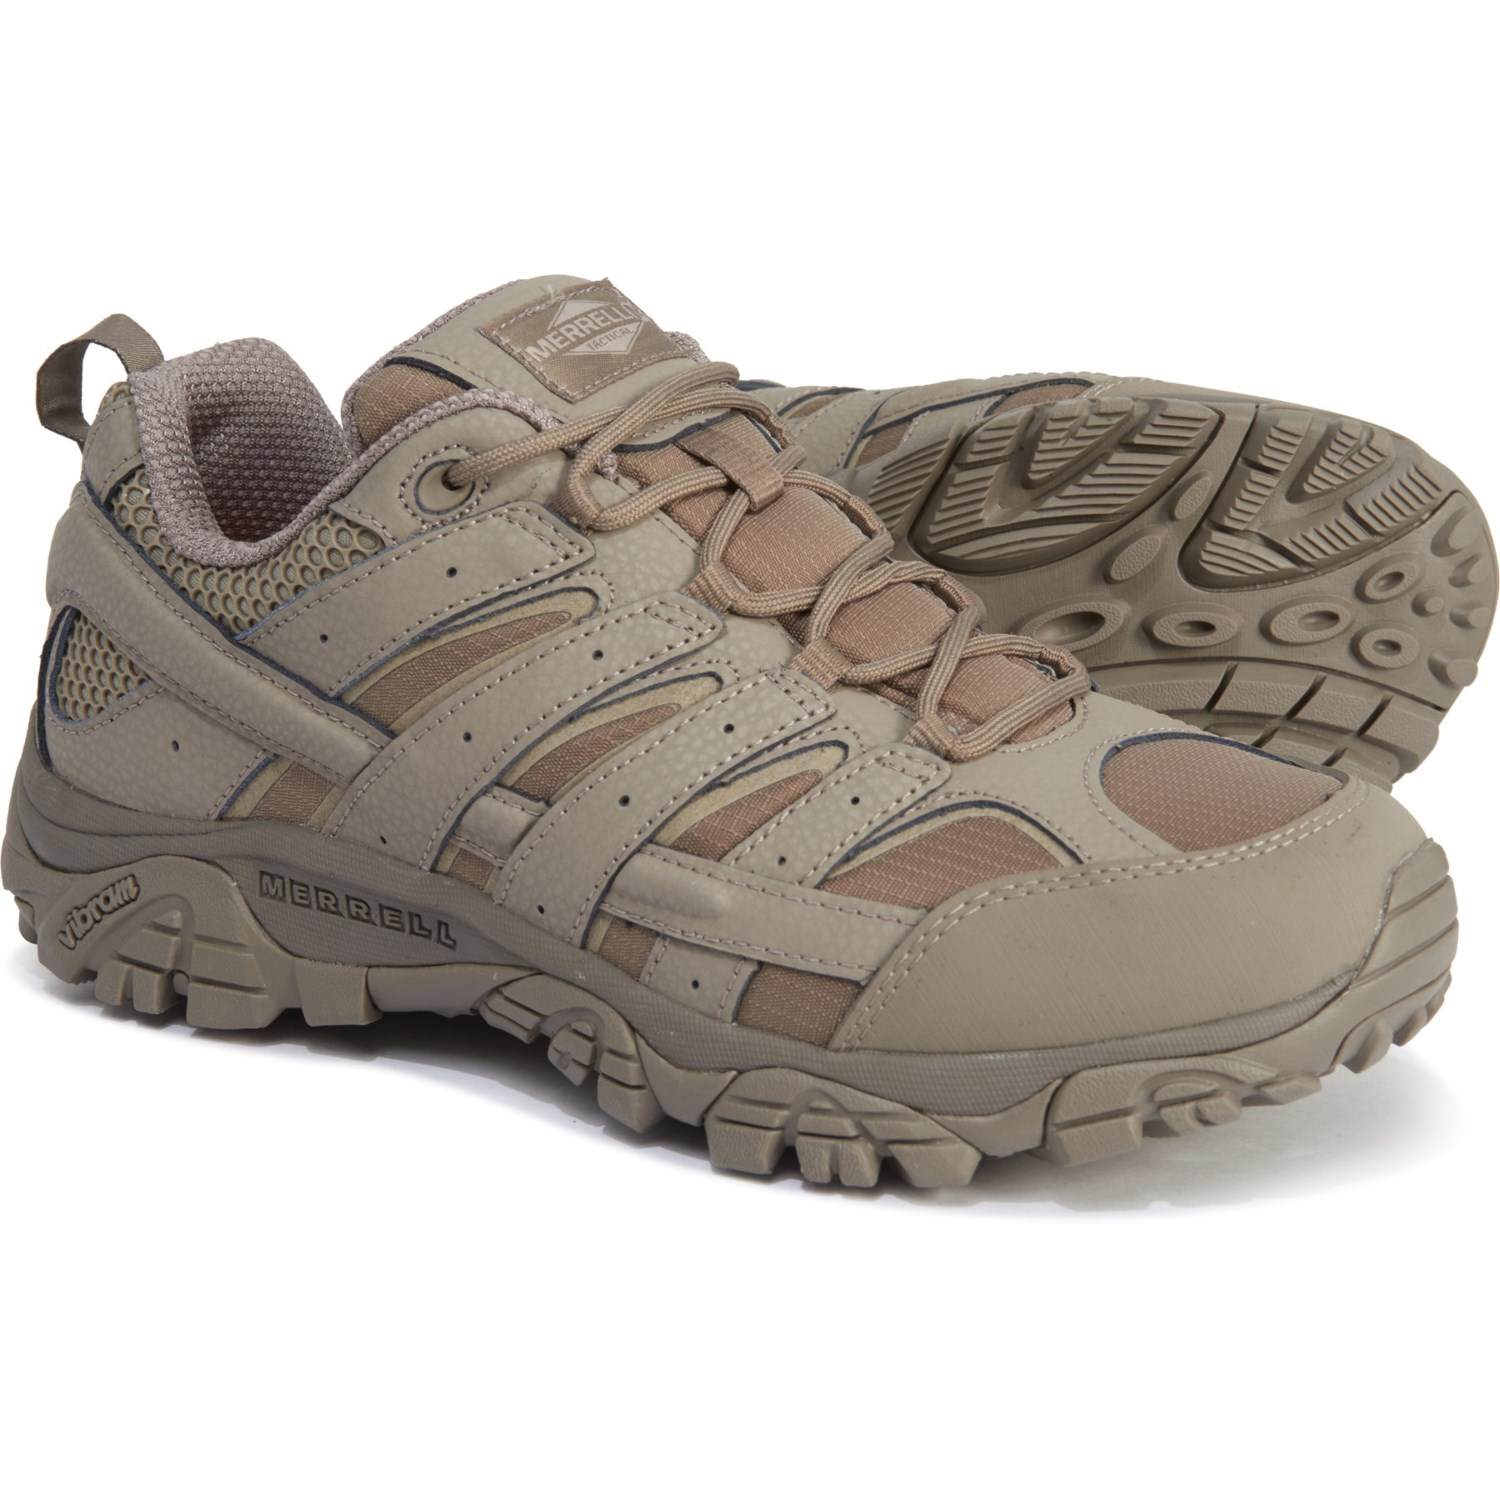 cc62397e6f6 Merrell Moab 2 Tactical Shoes (For Men) - Save 40%